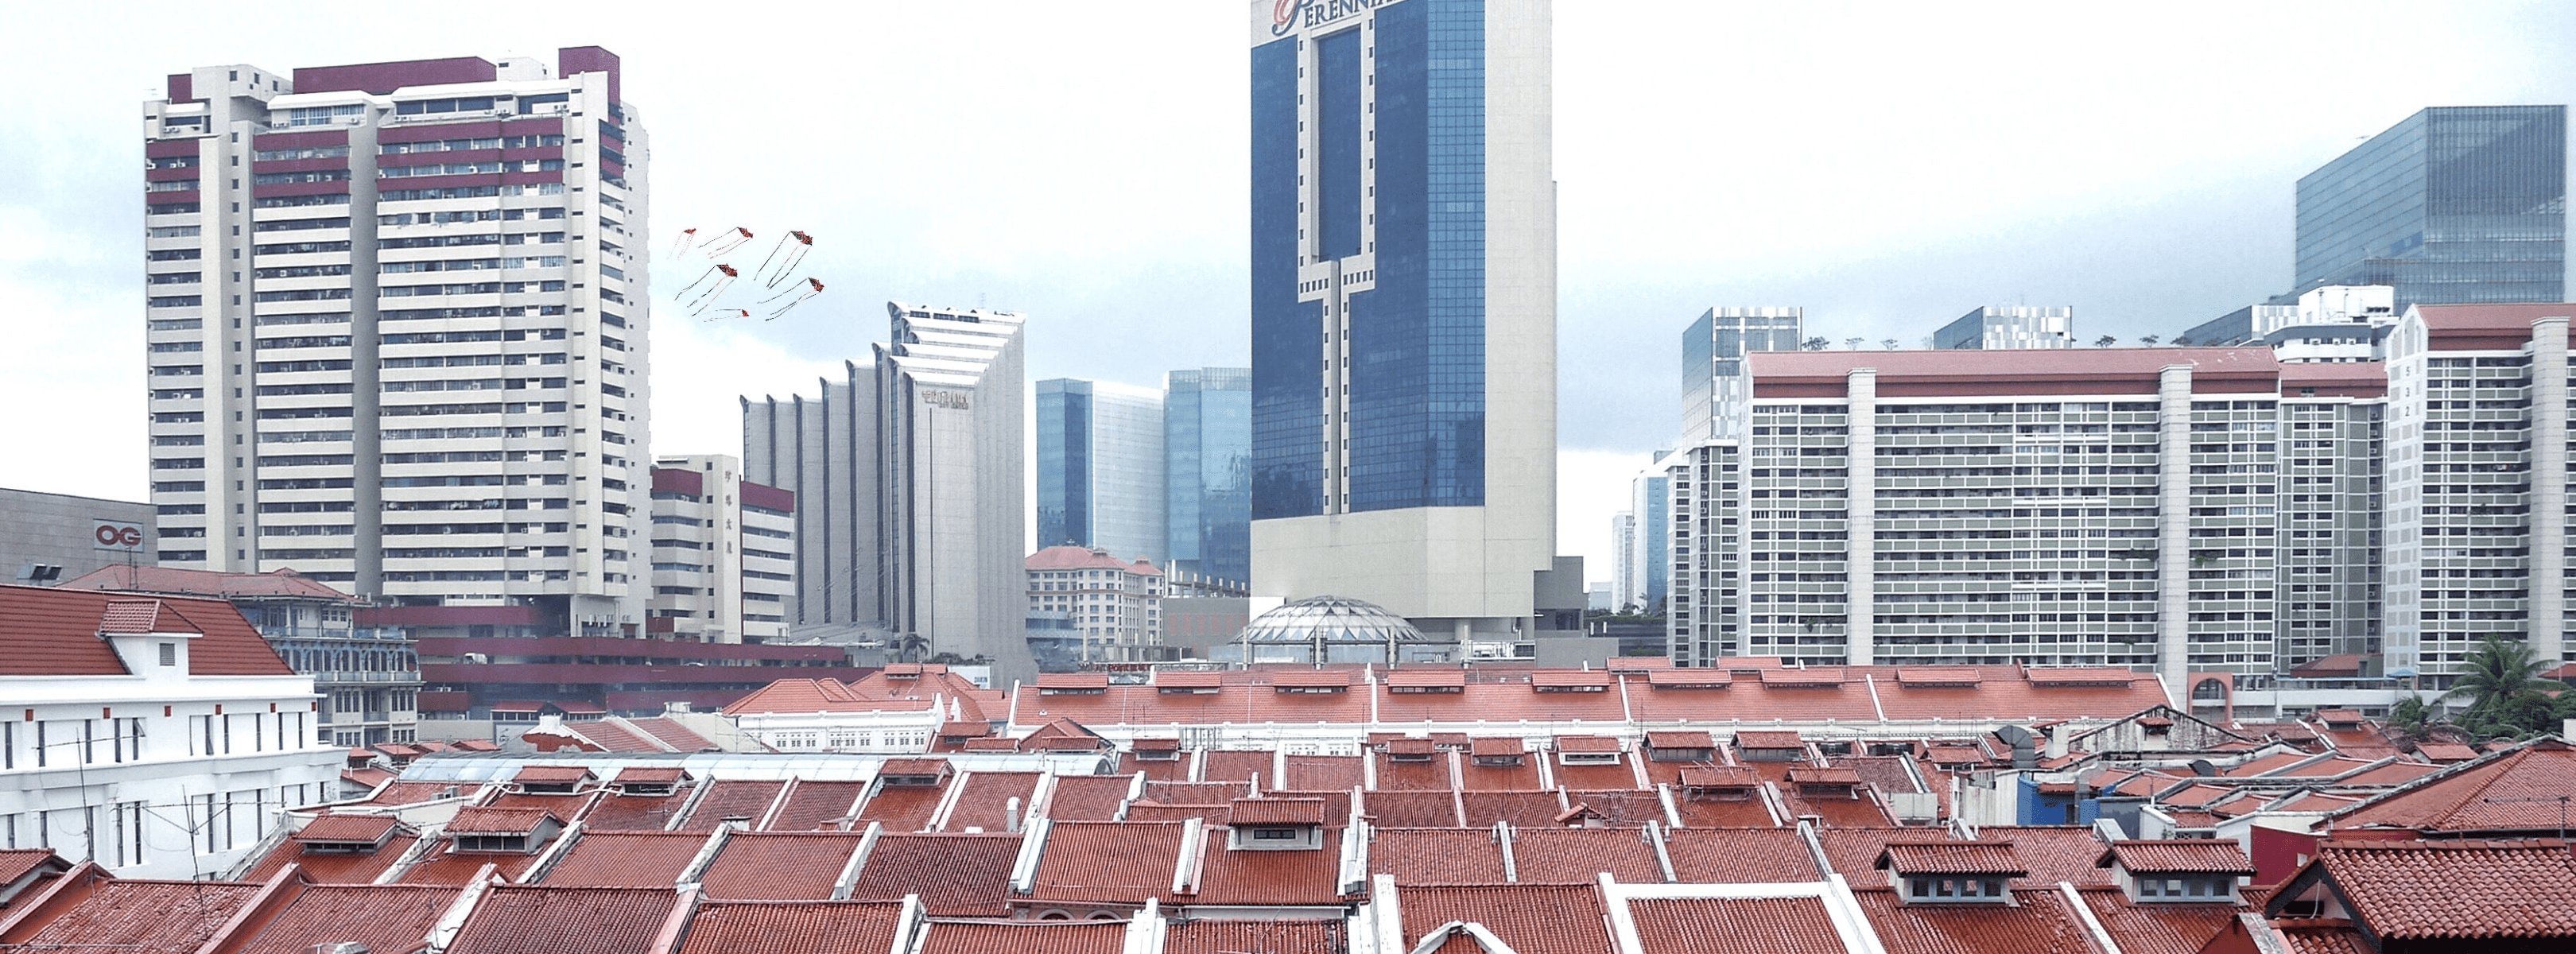 Drone Data: Enabling Property Managers to Make Smarter Decisions